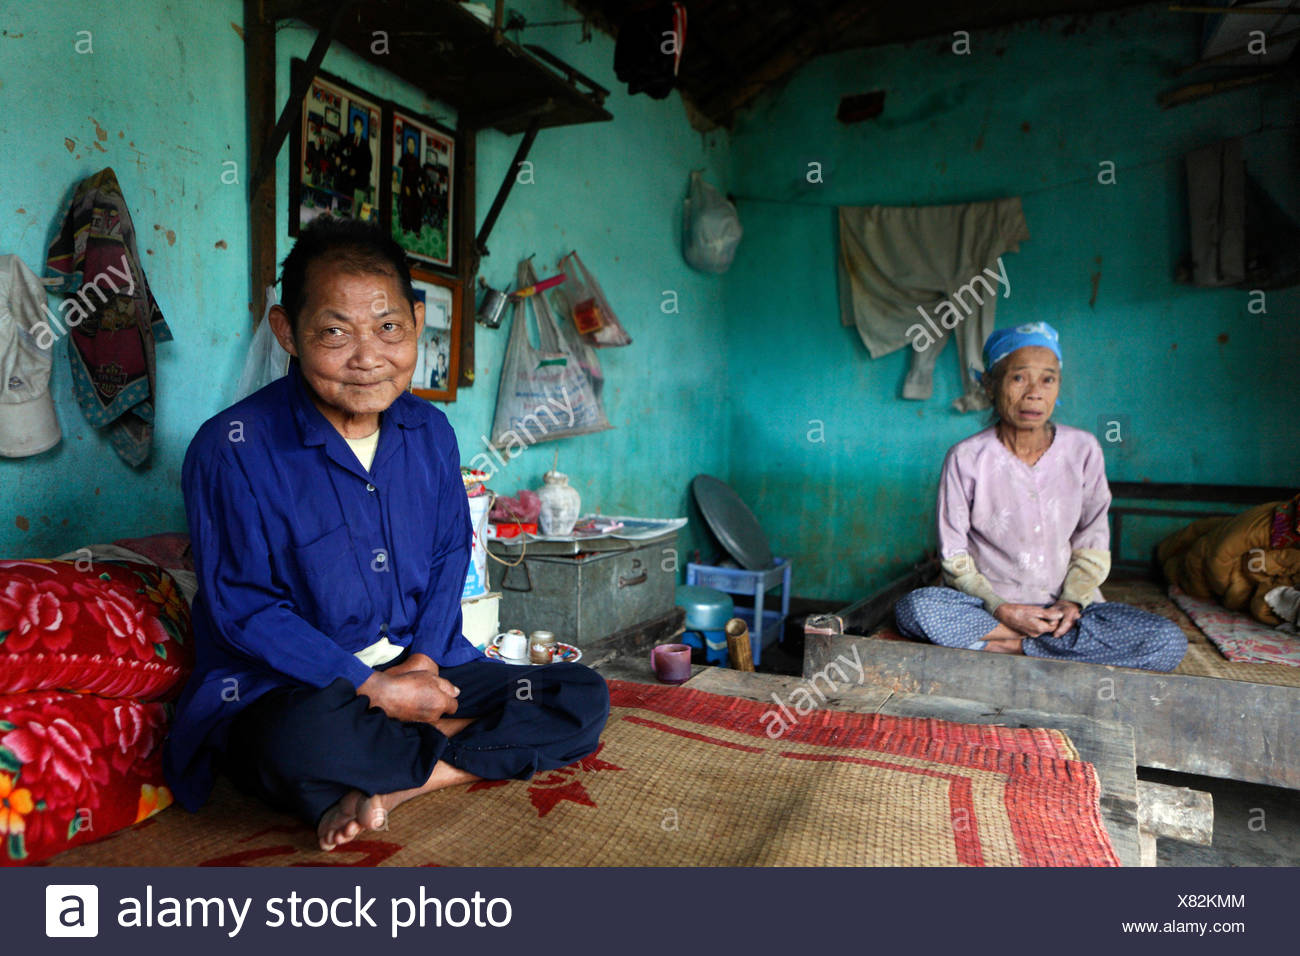 Quack Thi Thih, 71, and her husband, Quack Van Thui, 81, in their home almost completly destroyed by a flood, Lien Hoa, Hoa Bin Stock Photo